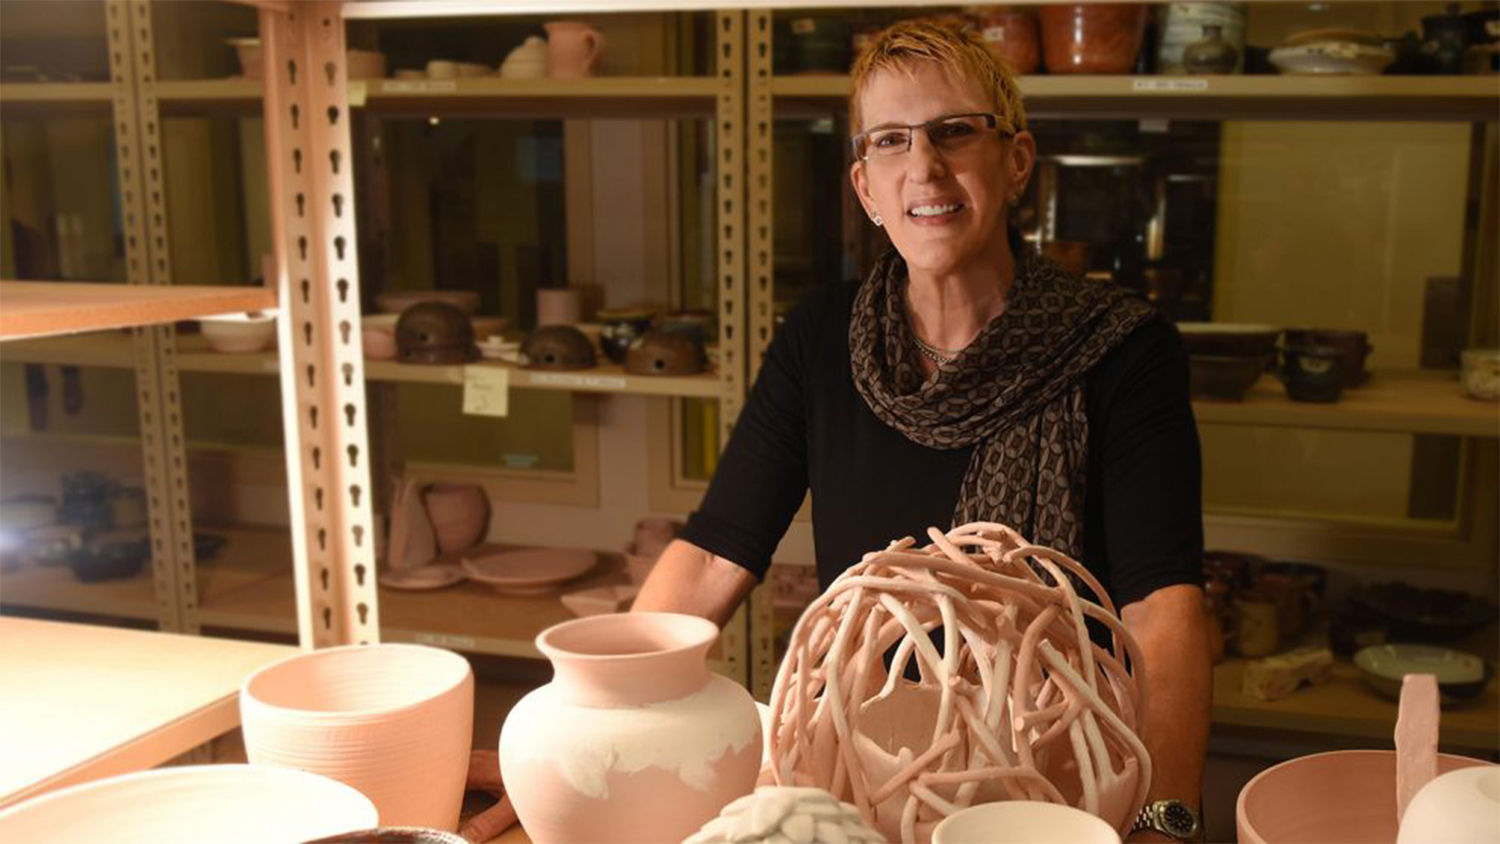 Carol Fountain Nix sitting at a desk with pottery displayed in front of her